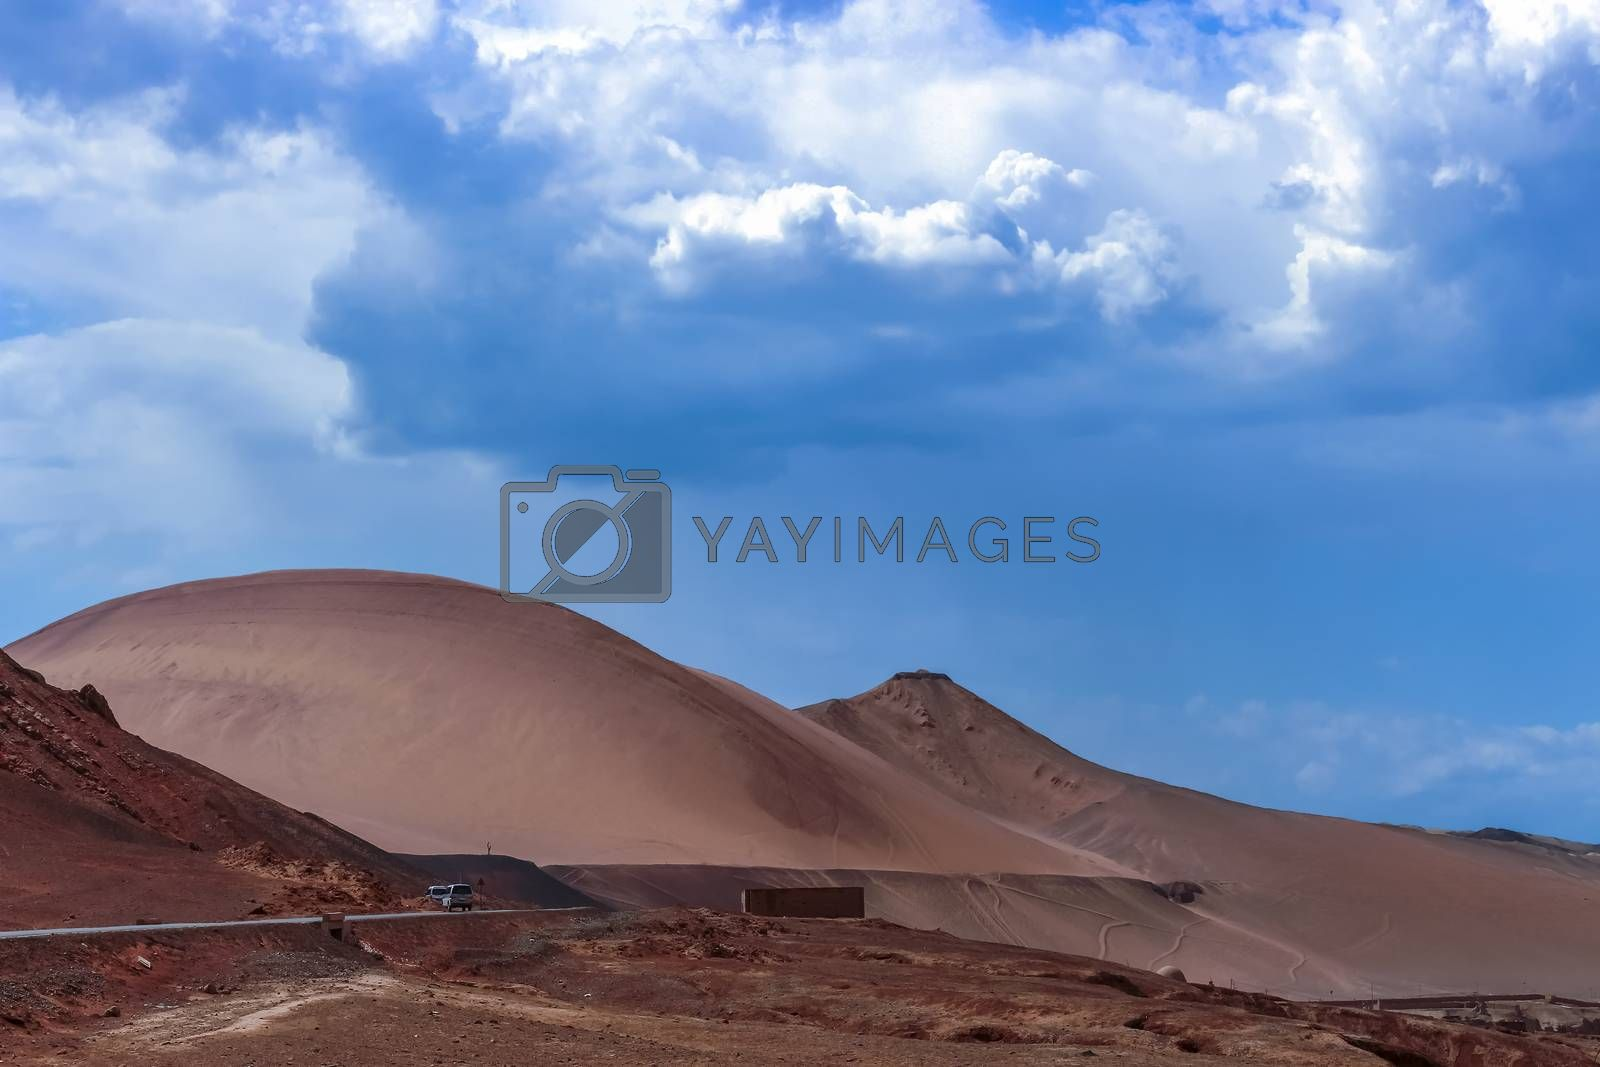 The Flaming Mountains average height is 500 meters, with some peaks reaching over 800 meters